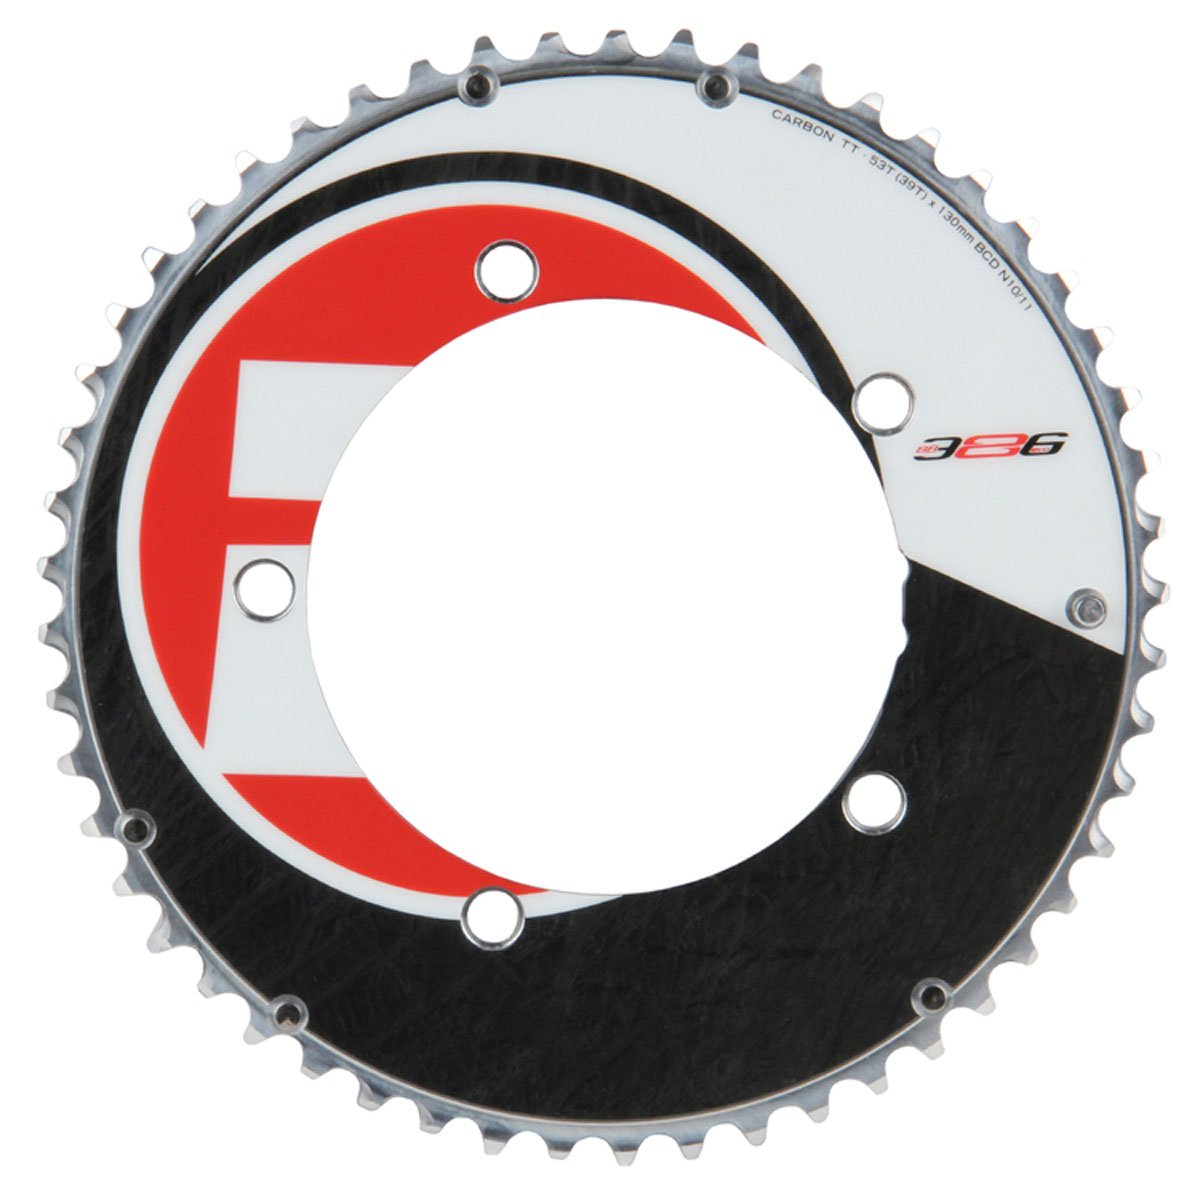 FSA Vision Tech Aero UD Carbon Bicycle Chainring - 53T/130mm - 368-0153B by Vision by FSA (Image #1)